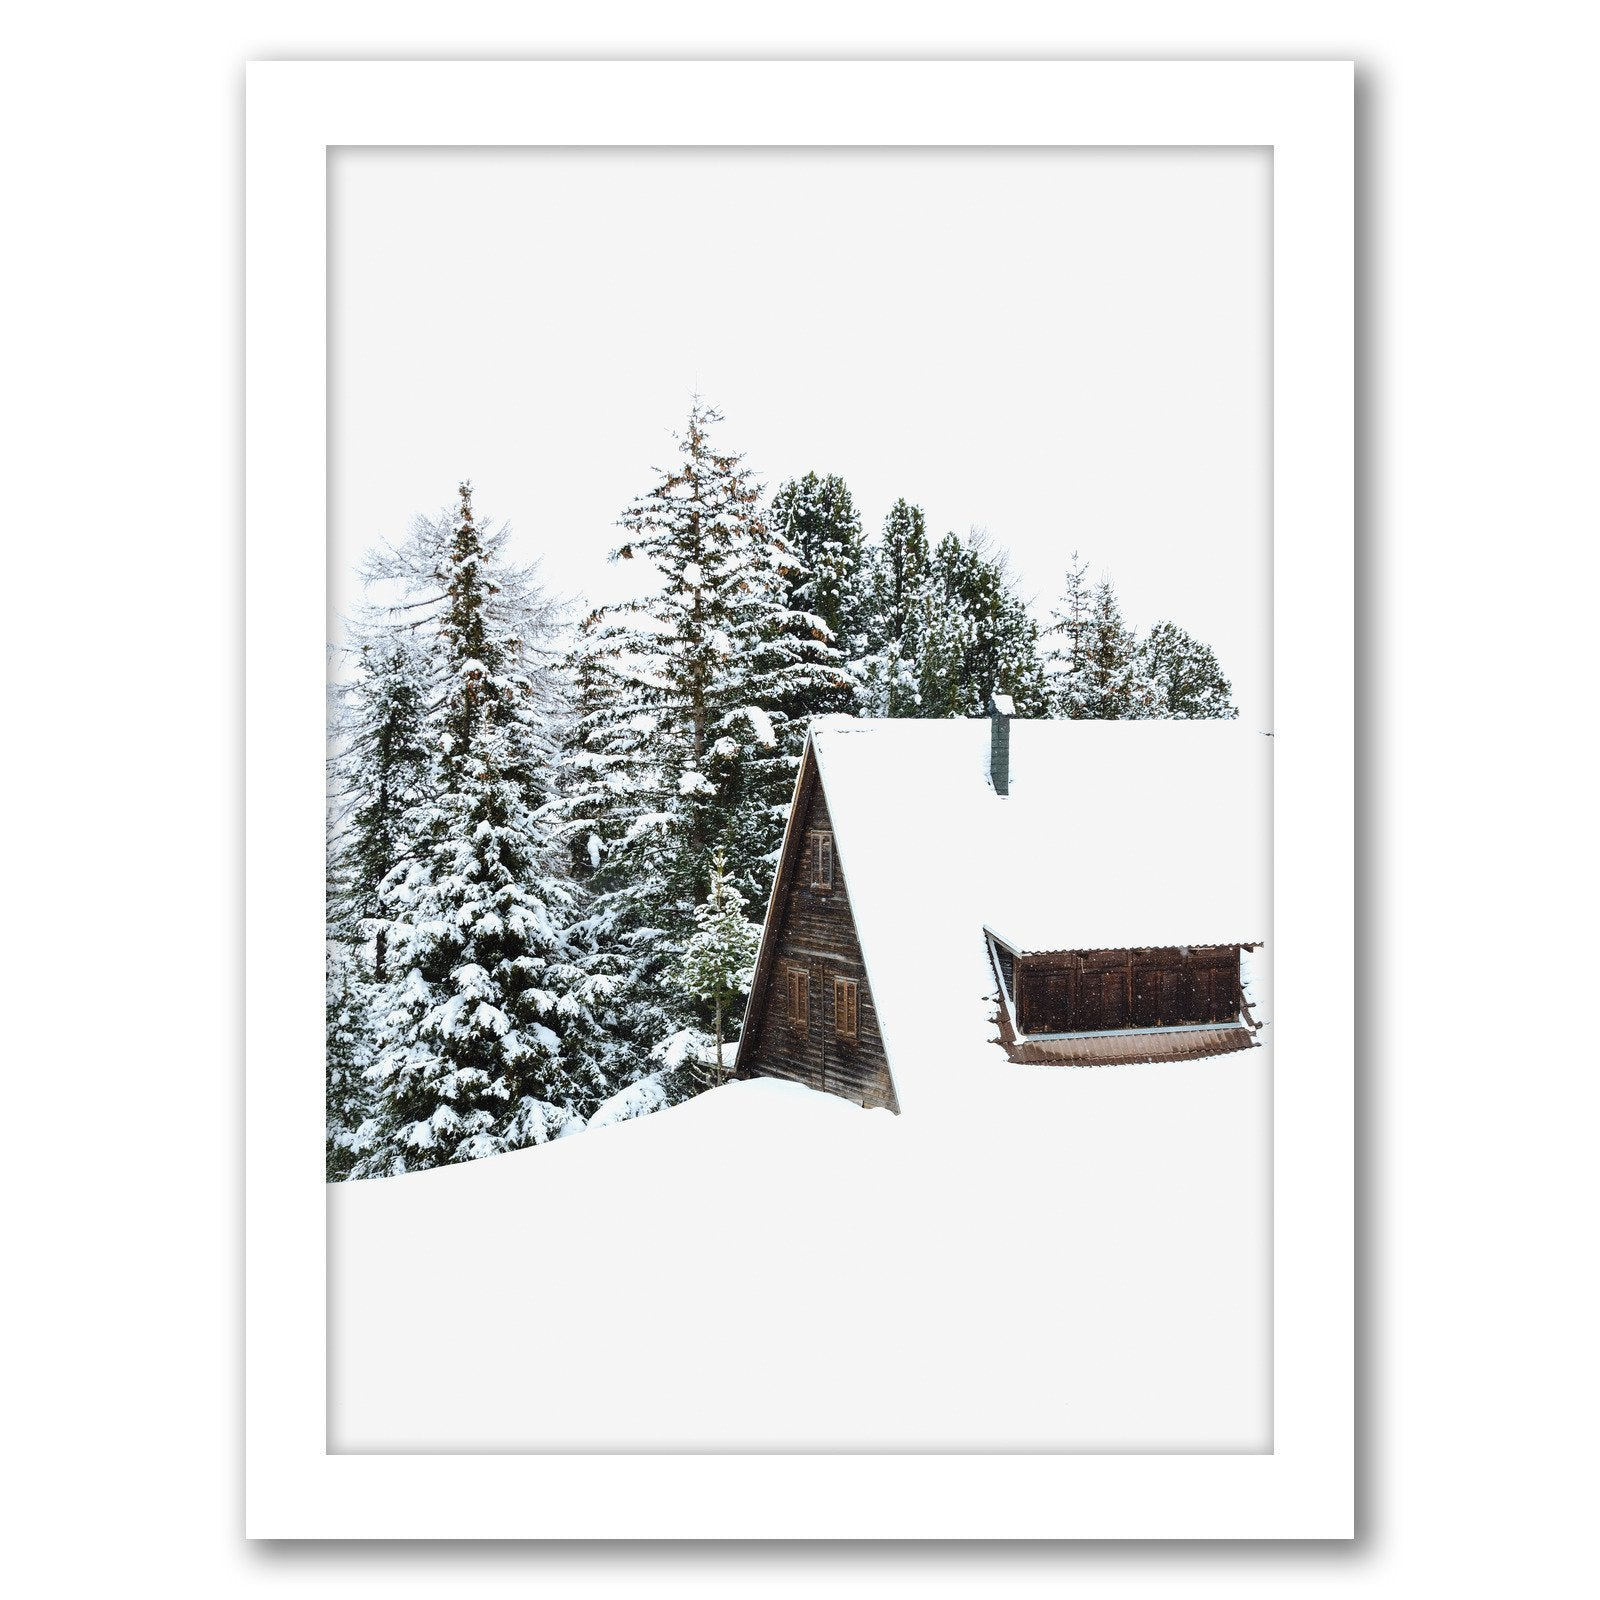 Cabin by Tanya Shumkina - White Framed Print - Wall Art - Americanflat